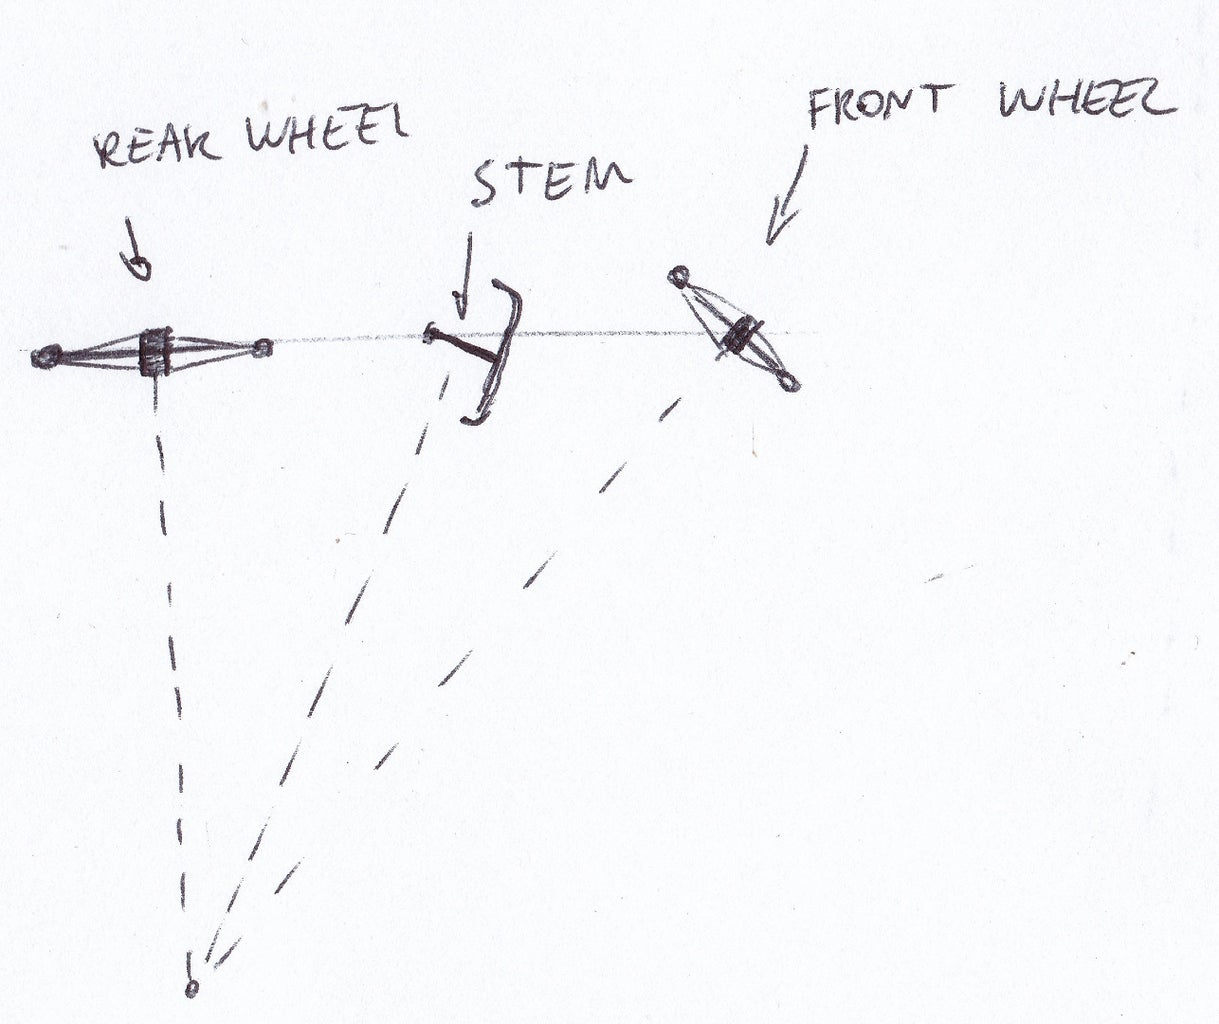 Build Steering System